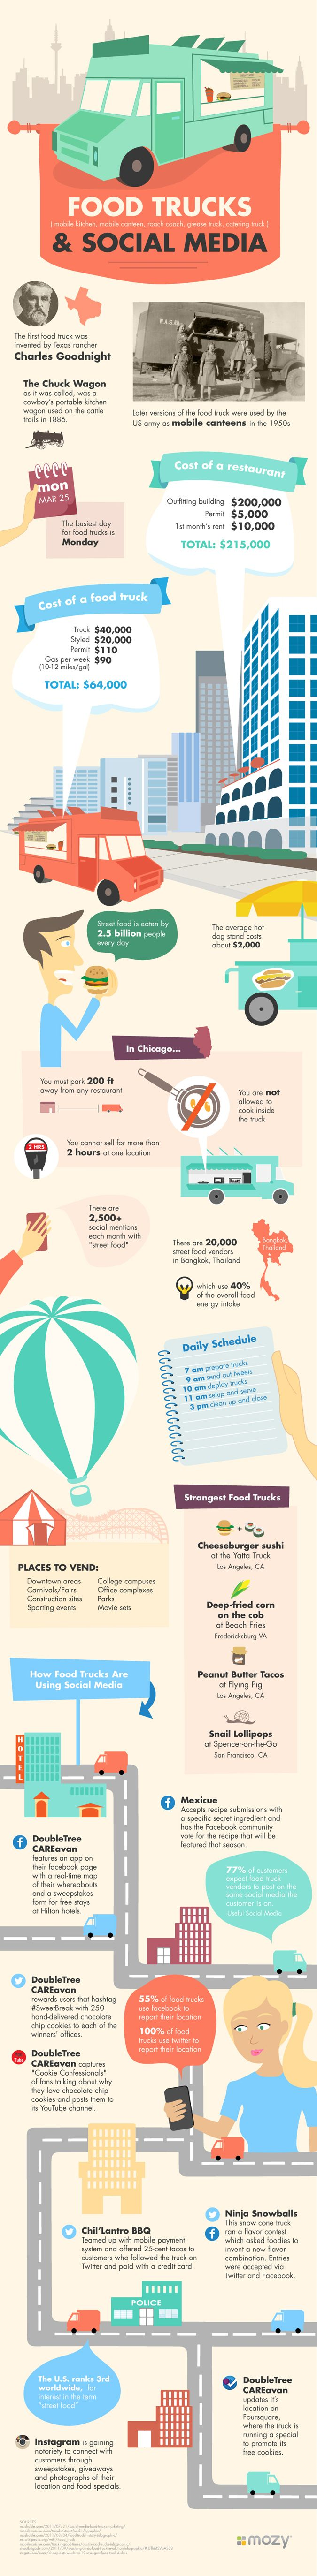 Fun facts about food trucks that I NEVER would have known!